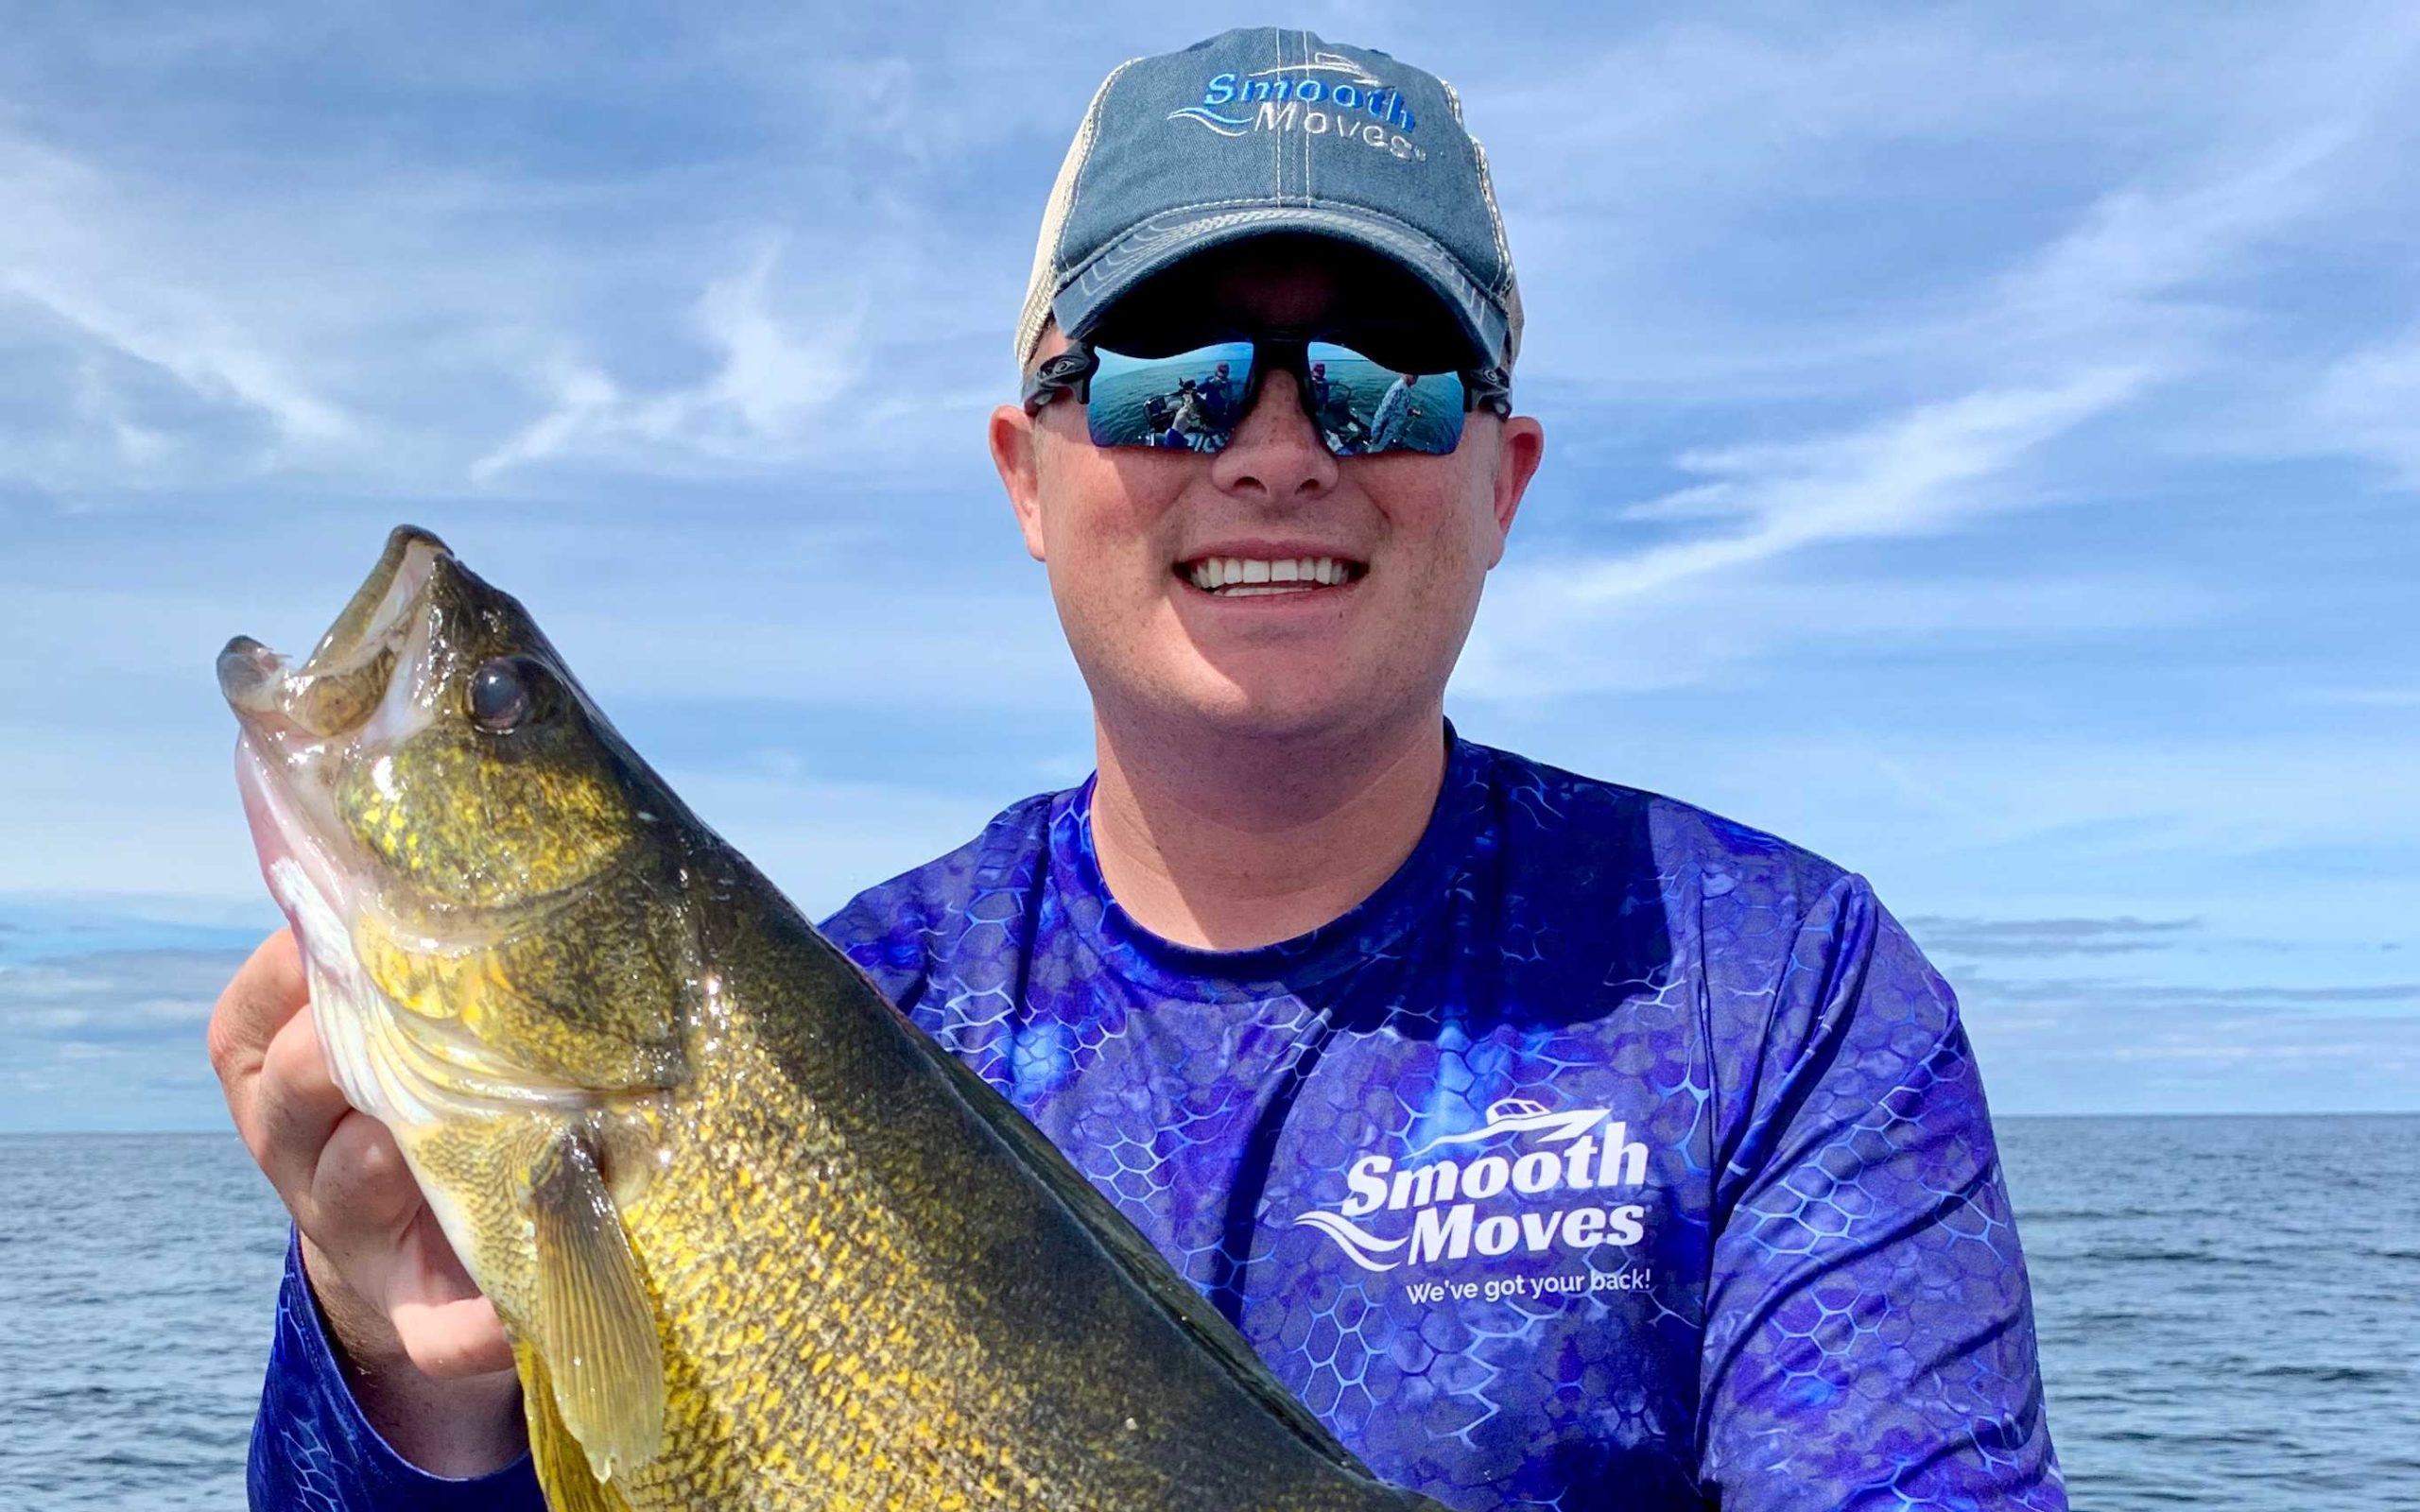 Pro angler Seth Lubber holding prize catch of the day.